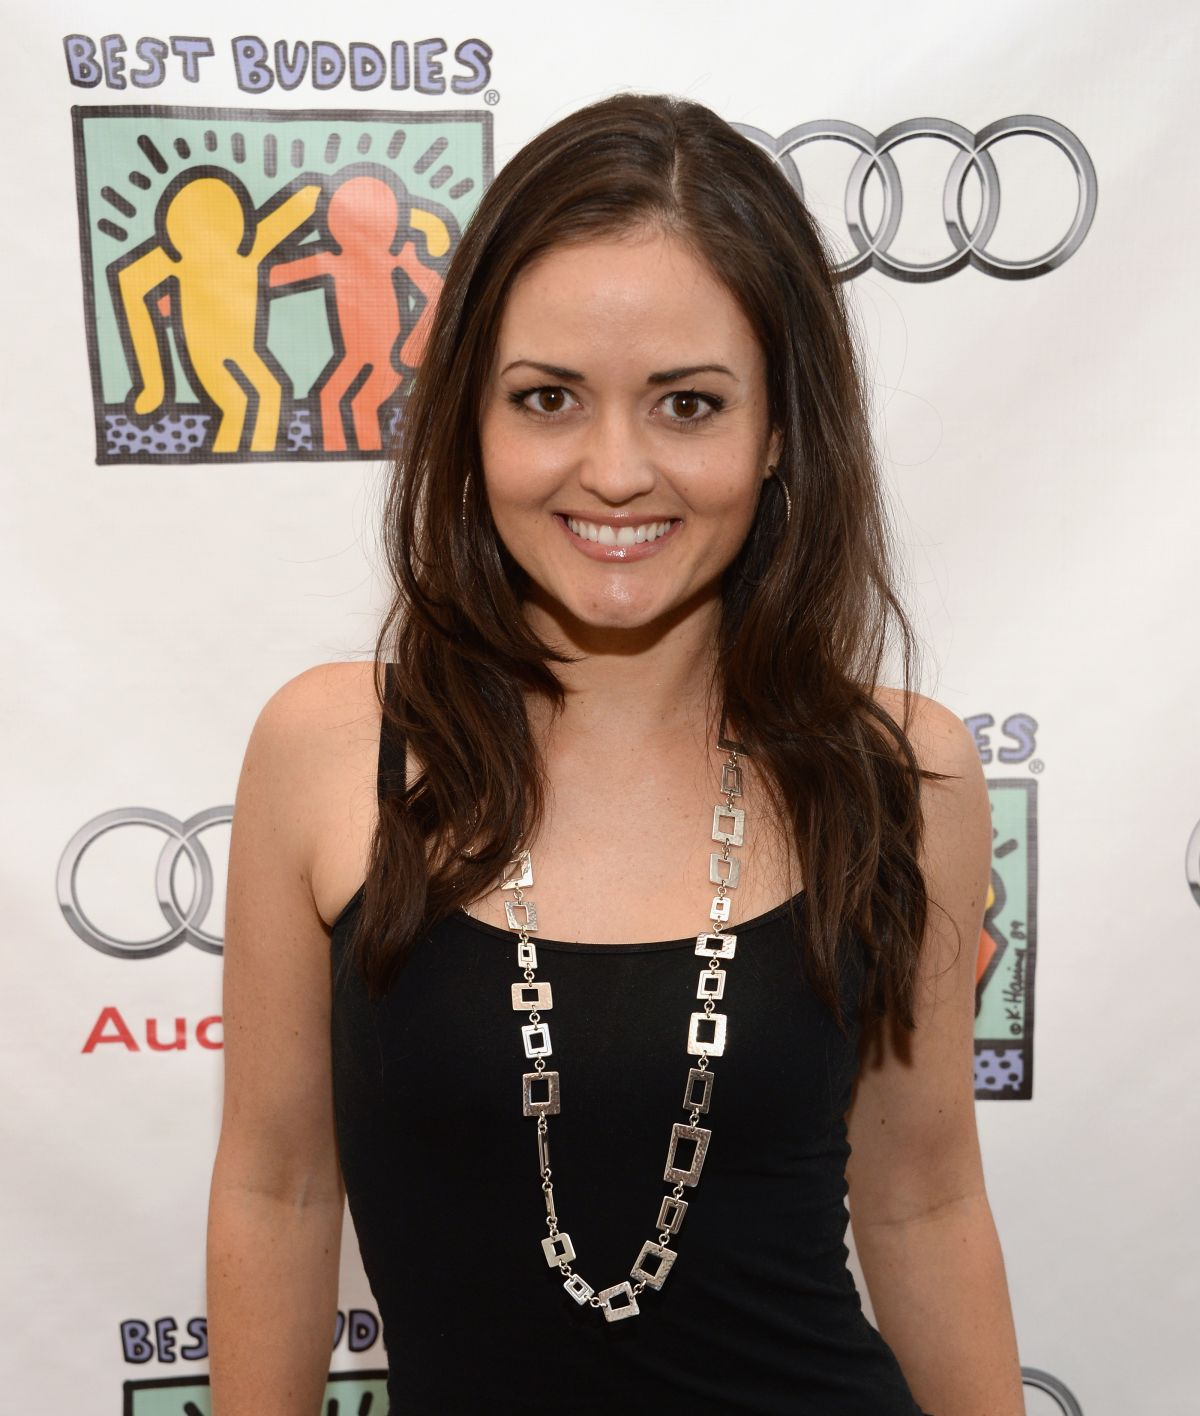 Danica McKellar At The Best Buddies Poker Event In Beverly Hills